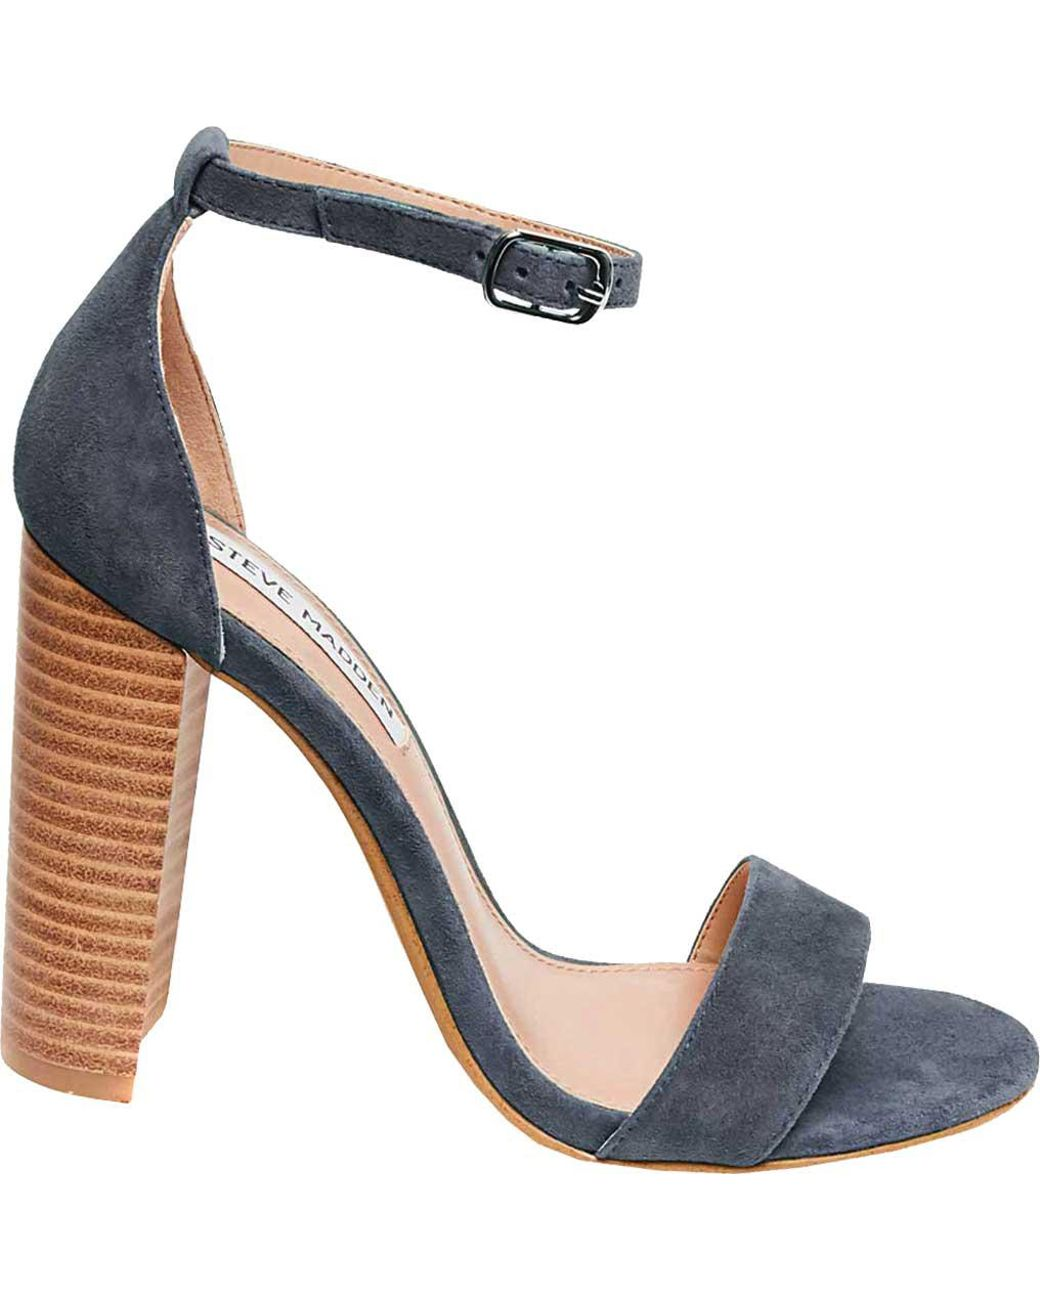 19dbf8aecaf4 Lyst - Steve Madden Carrson Ankle Strap Sandal in Blue - Save 73%